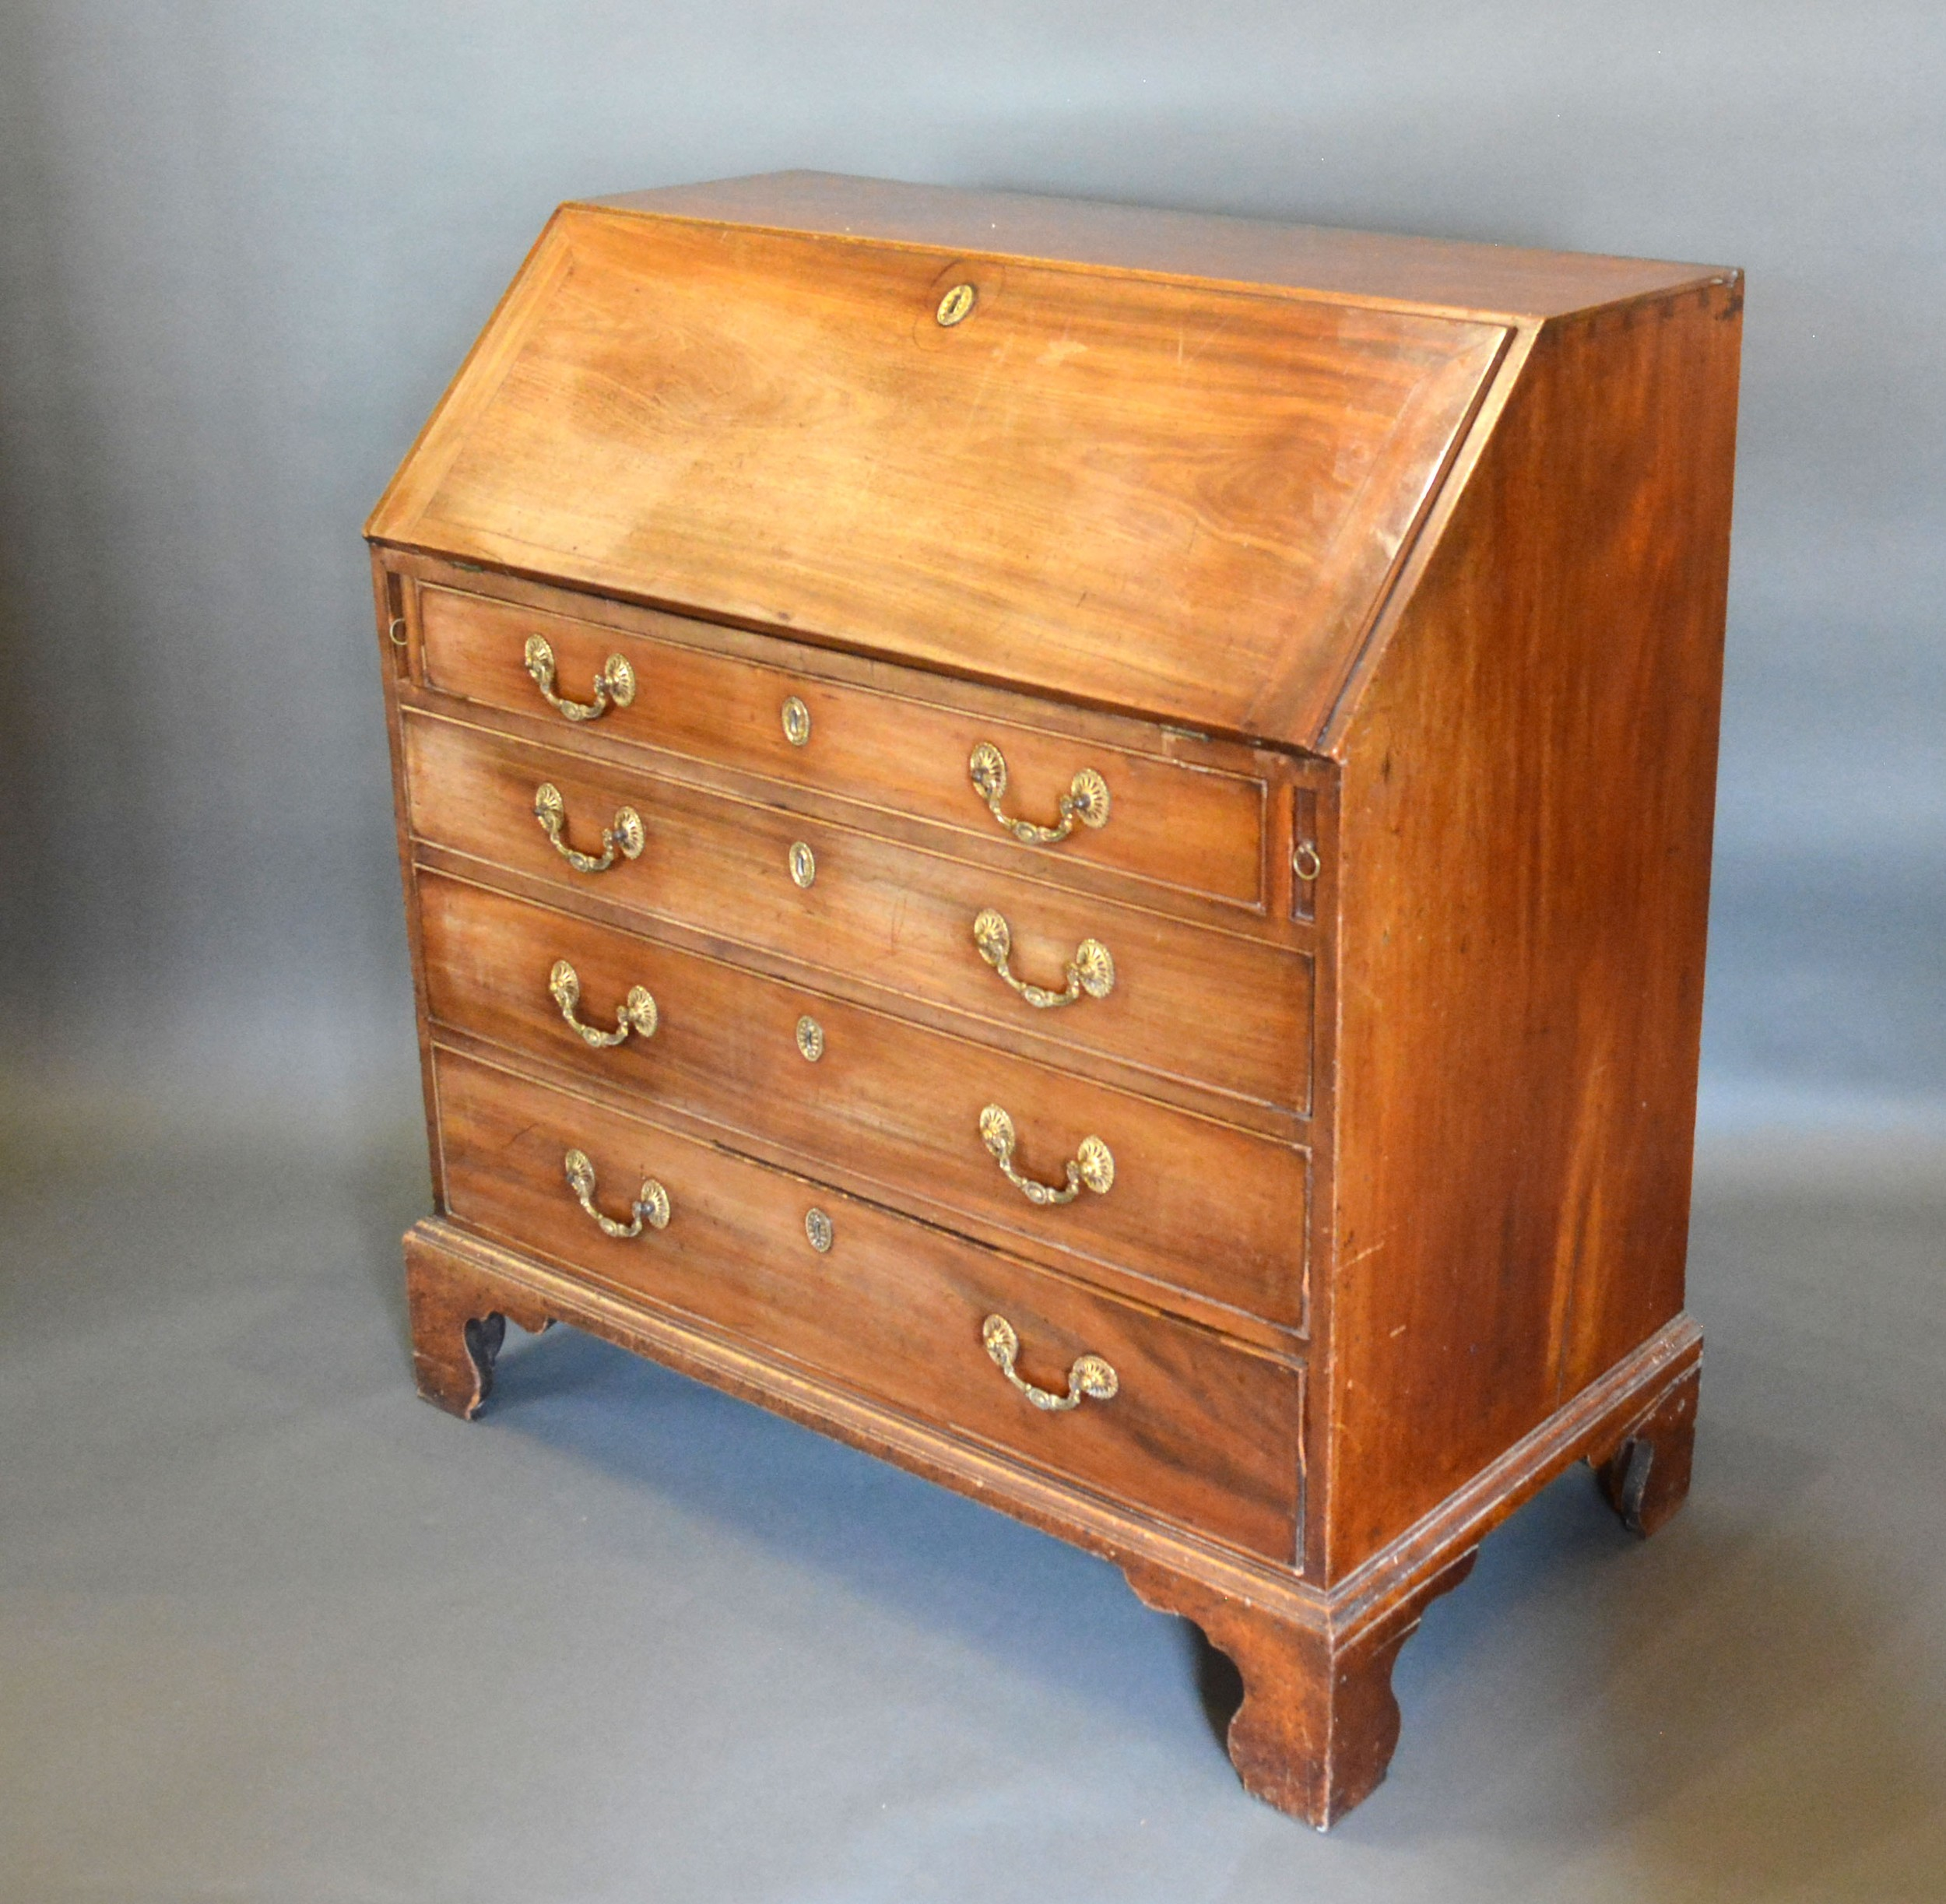 A 19th century mahogany bureau, the fall front enclosing a fitted interior above four long drawers